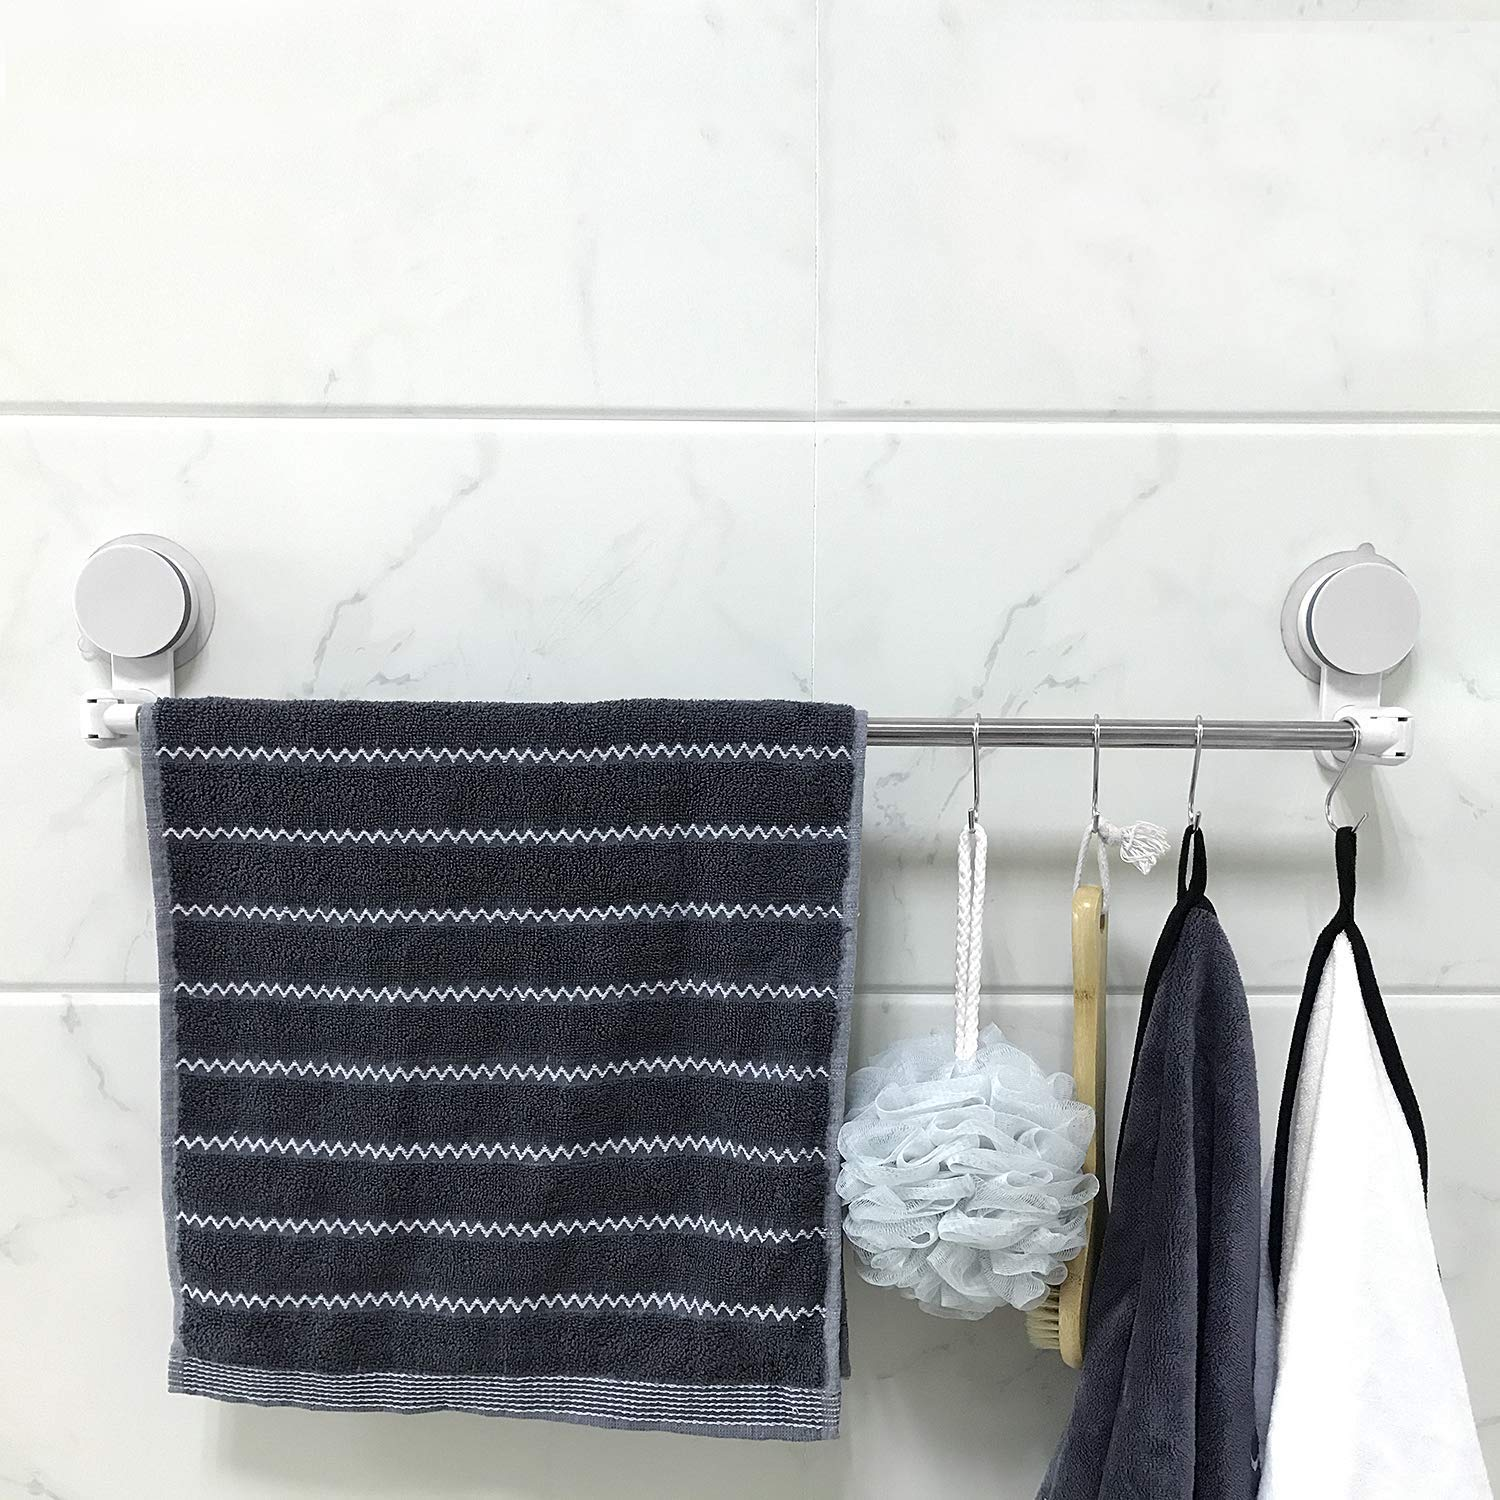 AND009583. Telescopic Bathroom and Kitchen Rod with Hooks